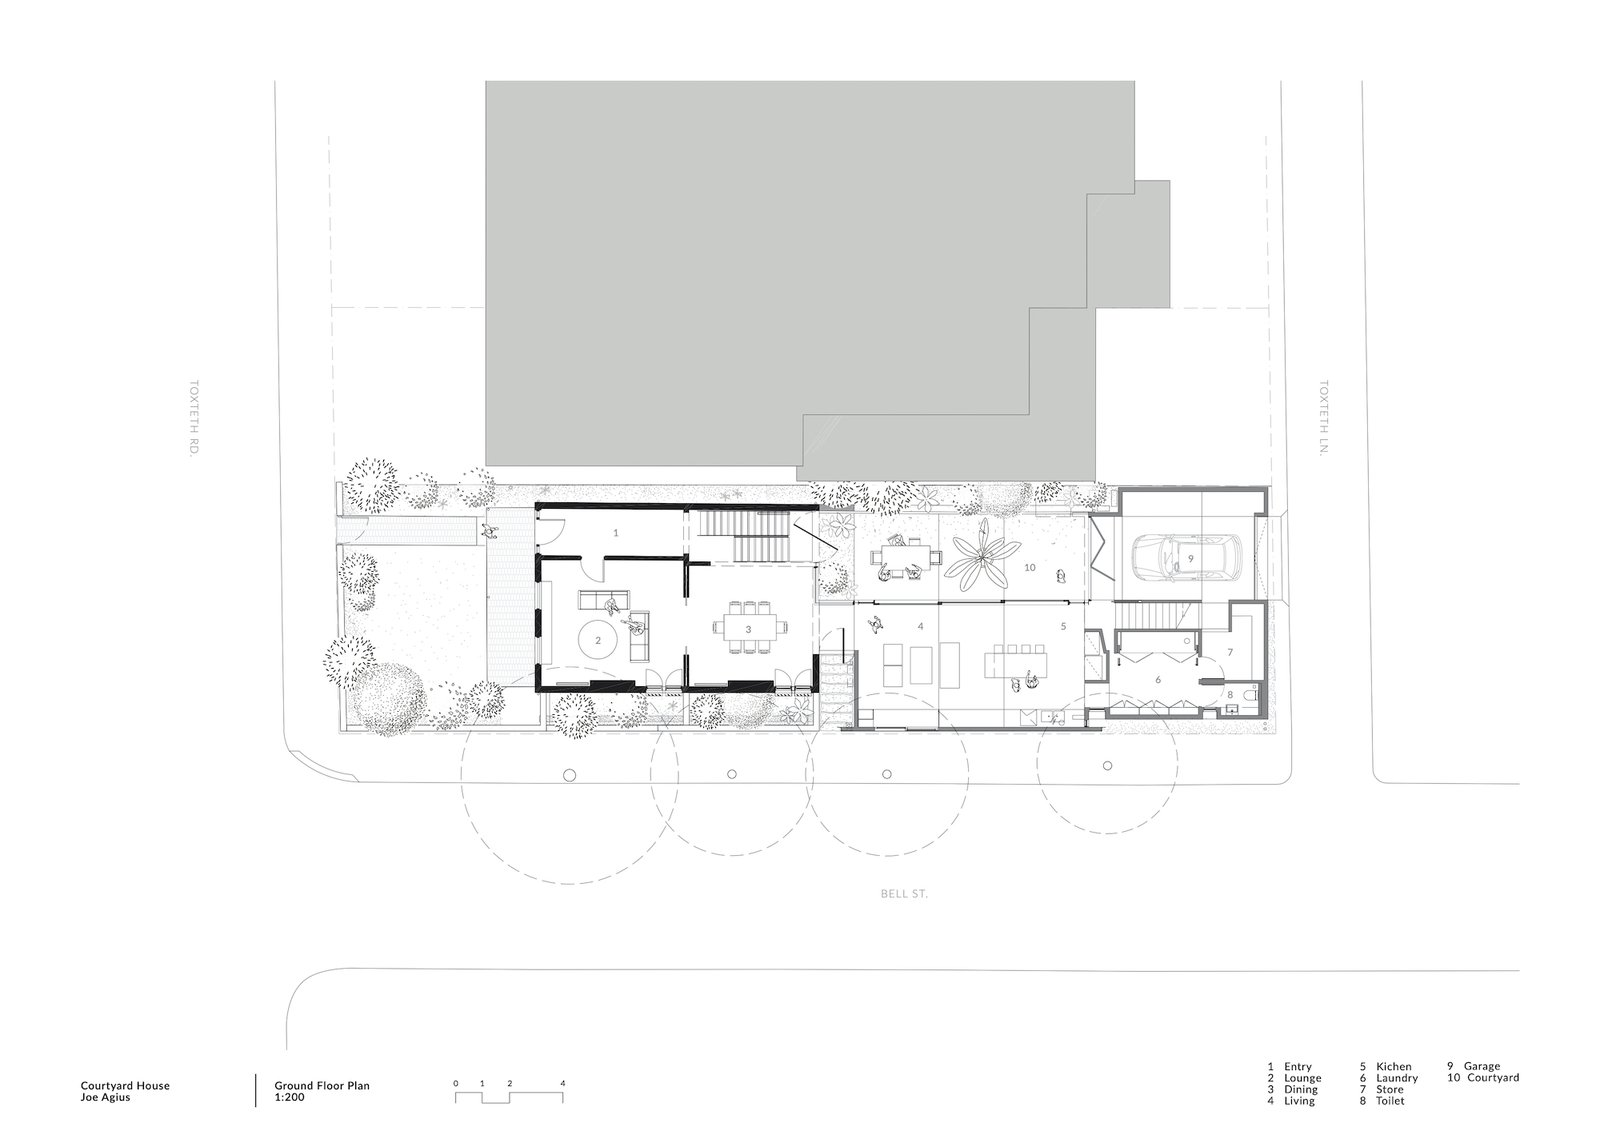 Ground floor plan of Courtyard House by COX.